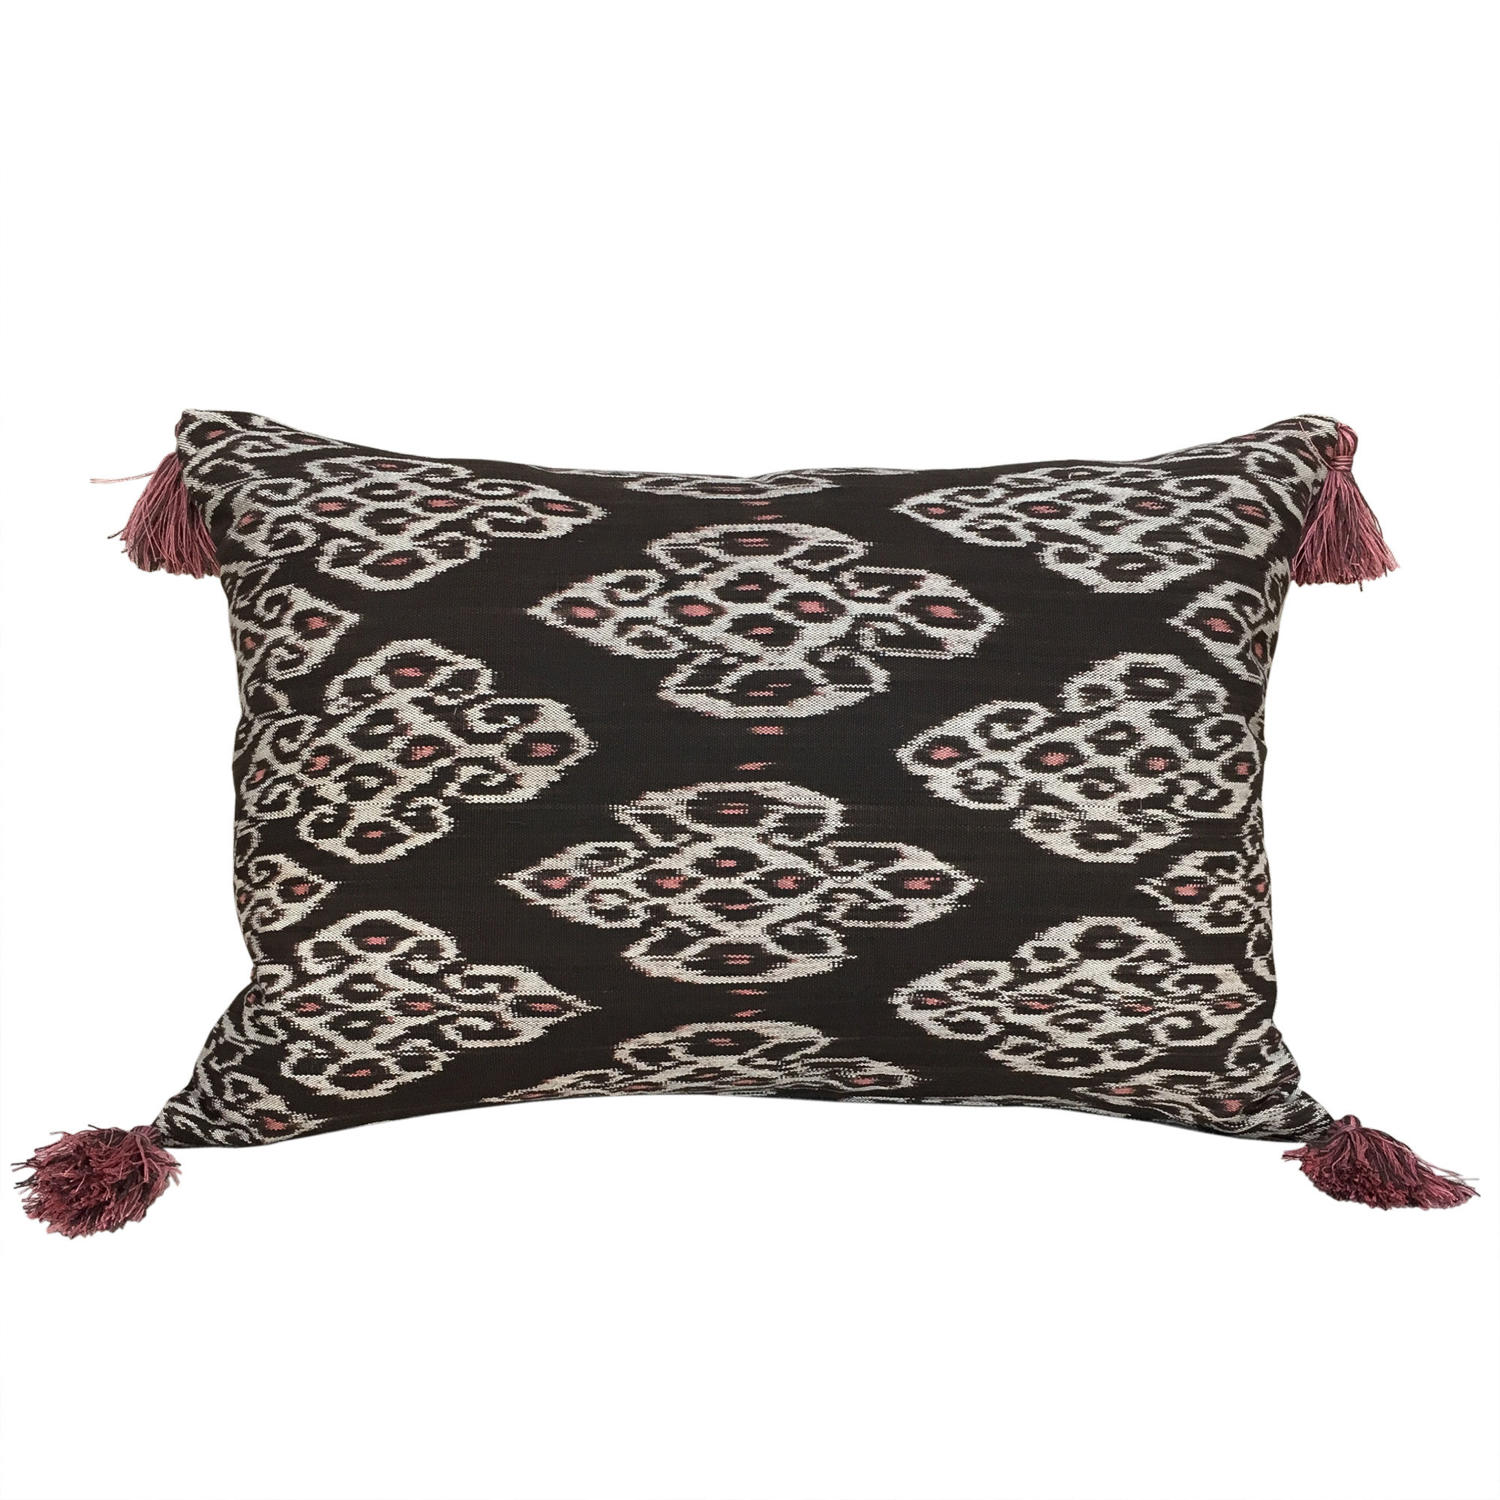 Timor Ikat Cushions with Tassels